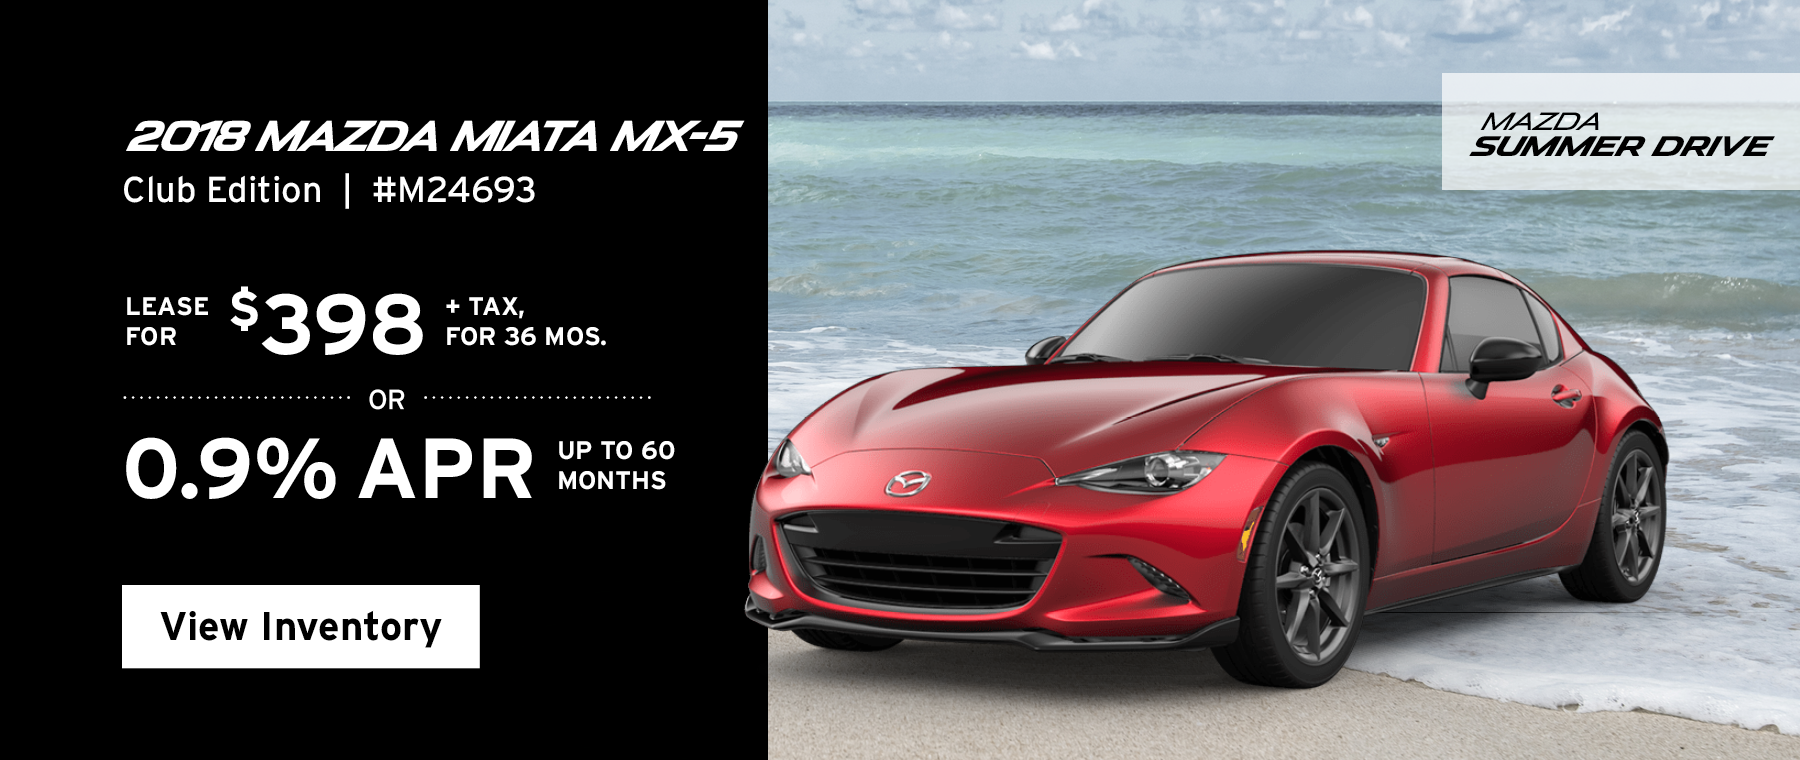 Lease the 2018 Mazda Miata MX-5 Club Edition for $398, plus tax for 36 months, or 0.9% APR up to 60 months.